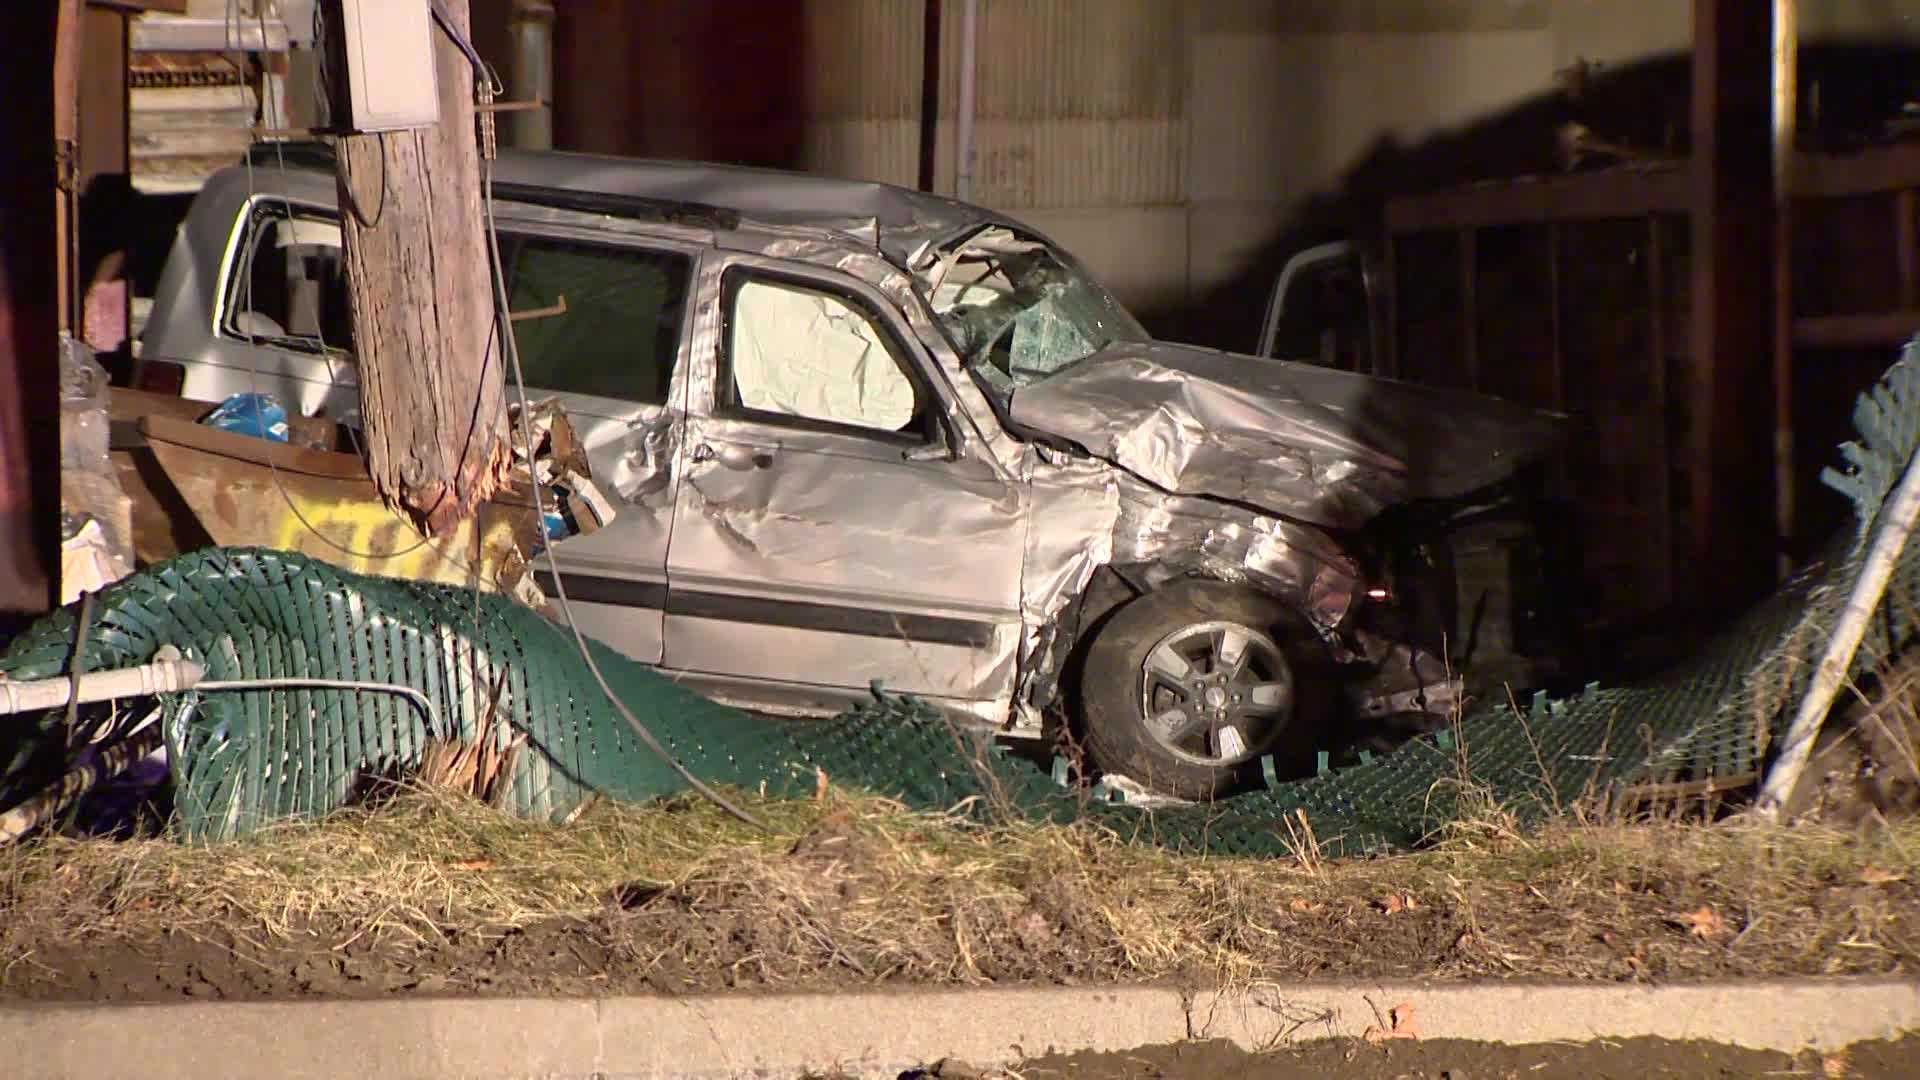 A fiery crash sent the driver of an SUV to a hospital.